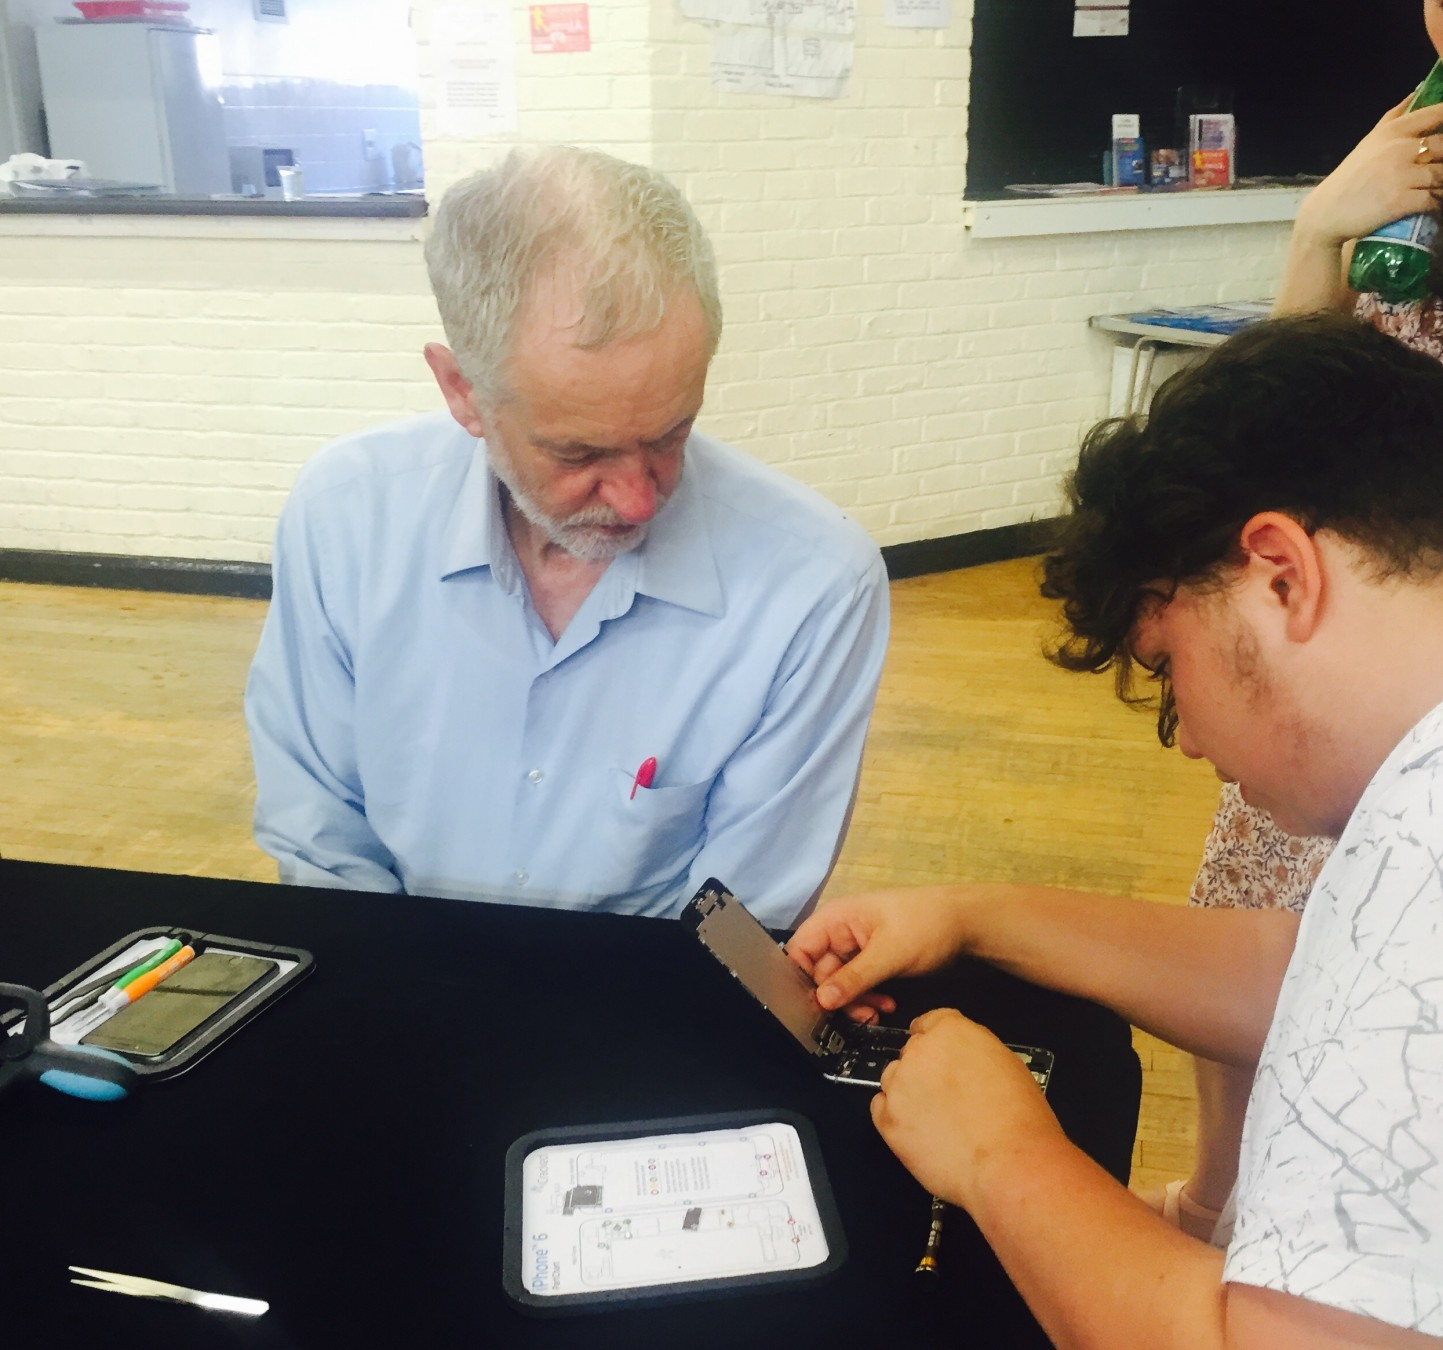 Social enterprise Cracked It is visited by Jeremy Corbyn